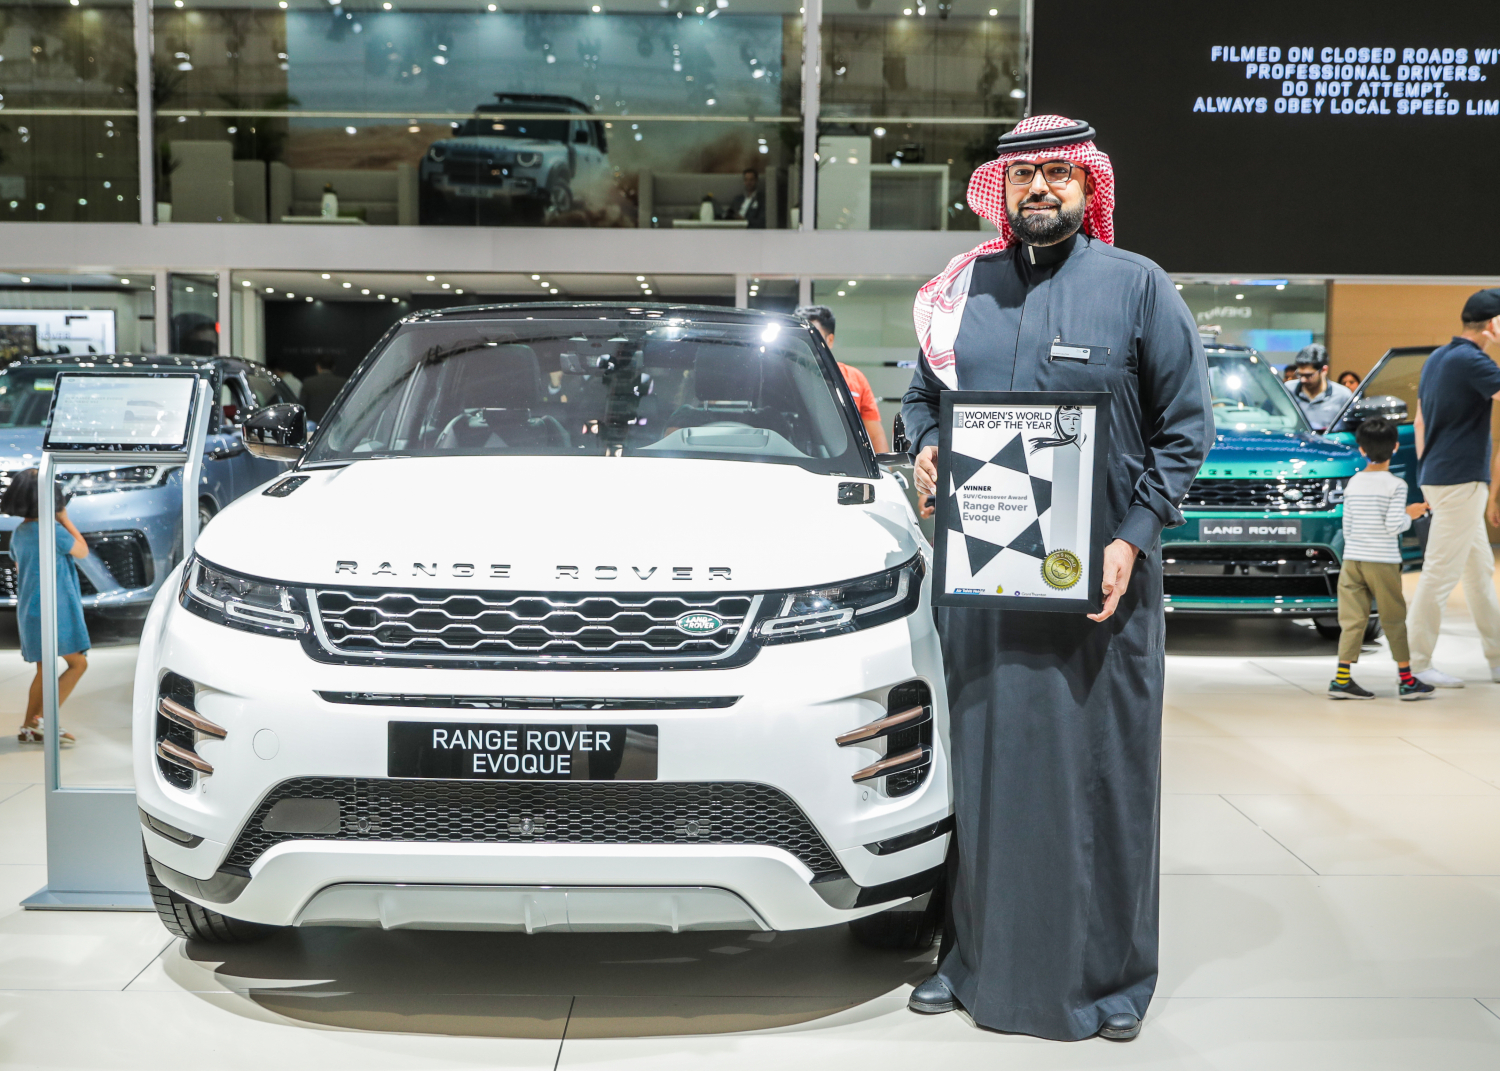 NEW EVOQUE WINS BEST SUV/CROSSOVER AT WWCOTY AWARDS